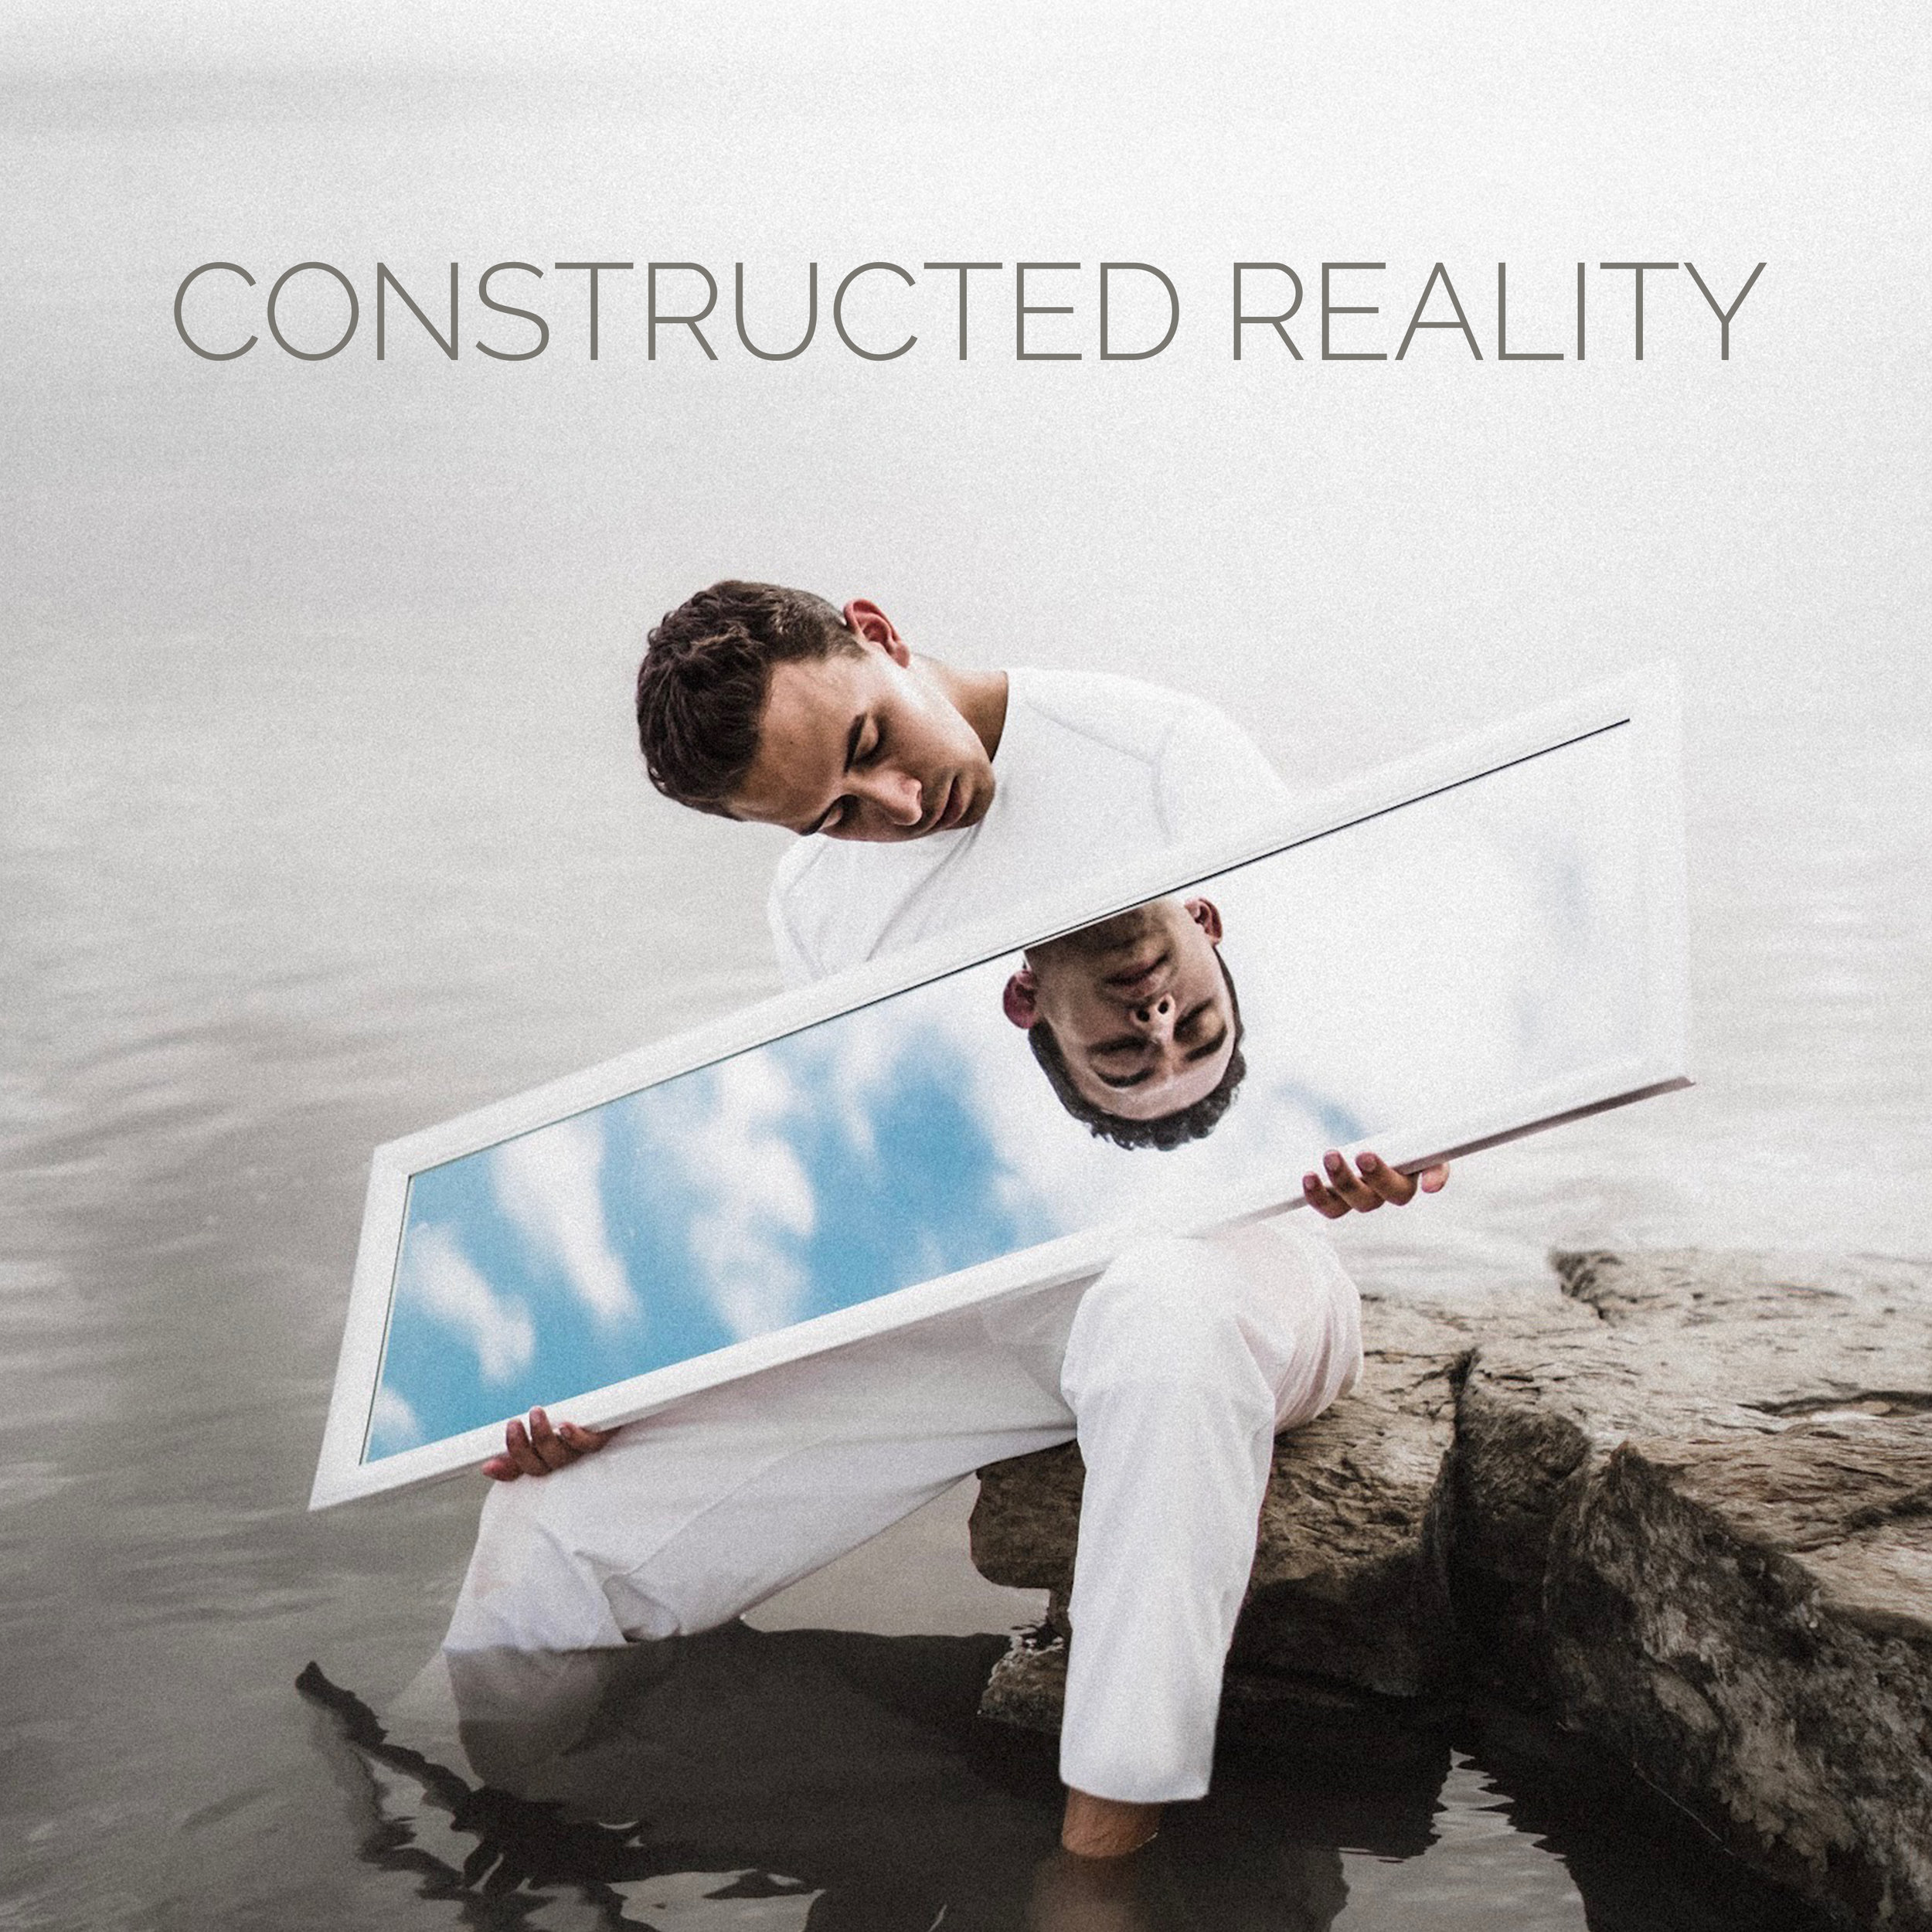 CONSTRUCTED REALITY SQUARE.jpg